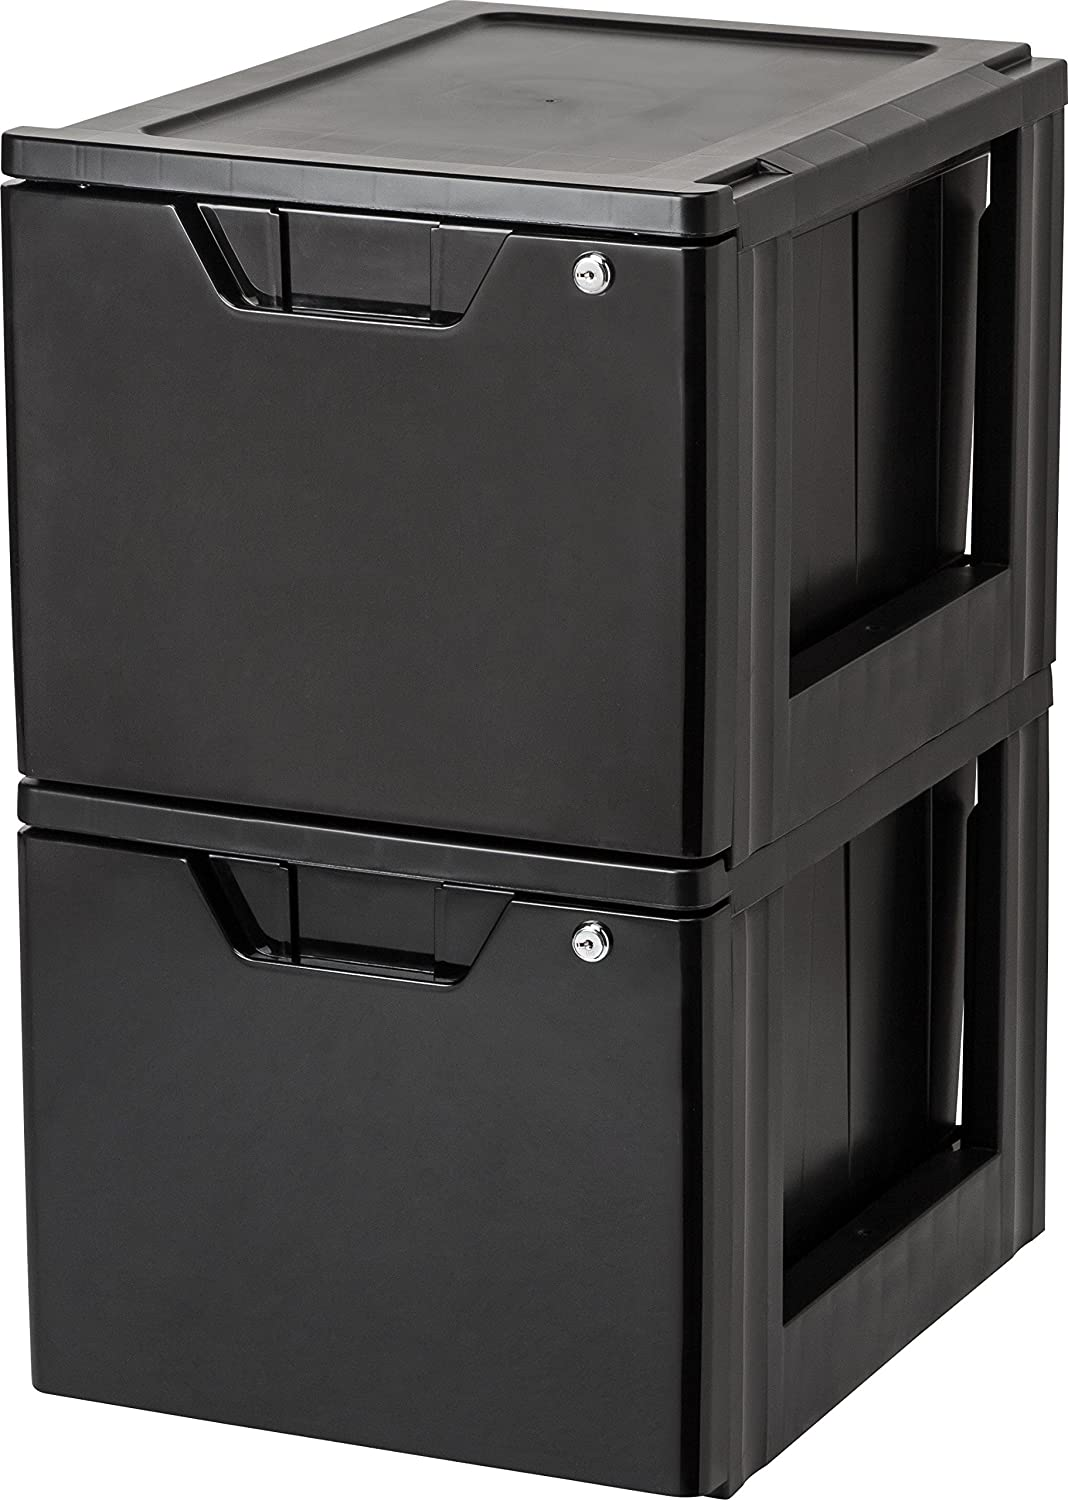 Amazon.com: IRIS Stacking File Storage Drawer with Lock, 2 Pack, Lock and Key: Home & Kitchen